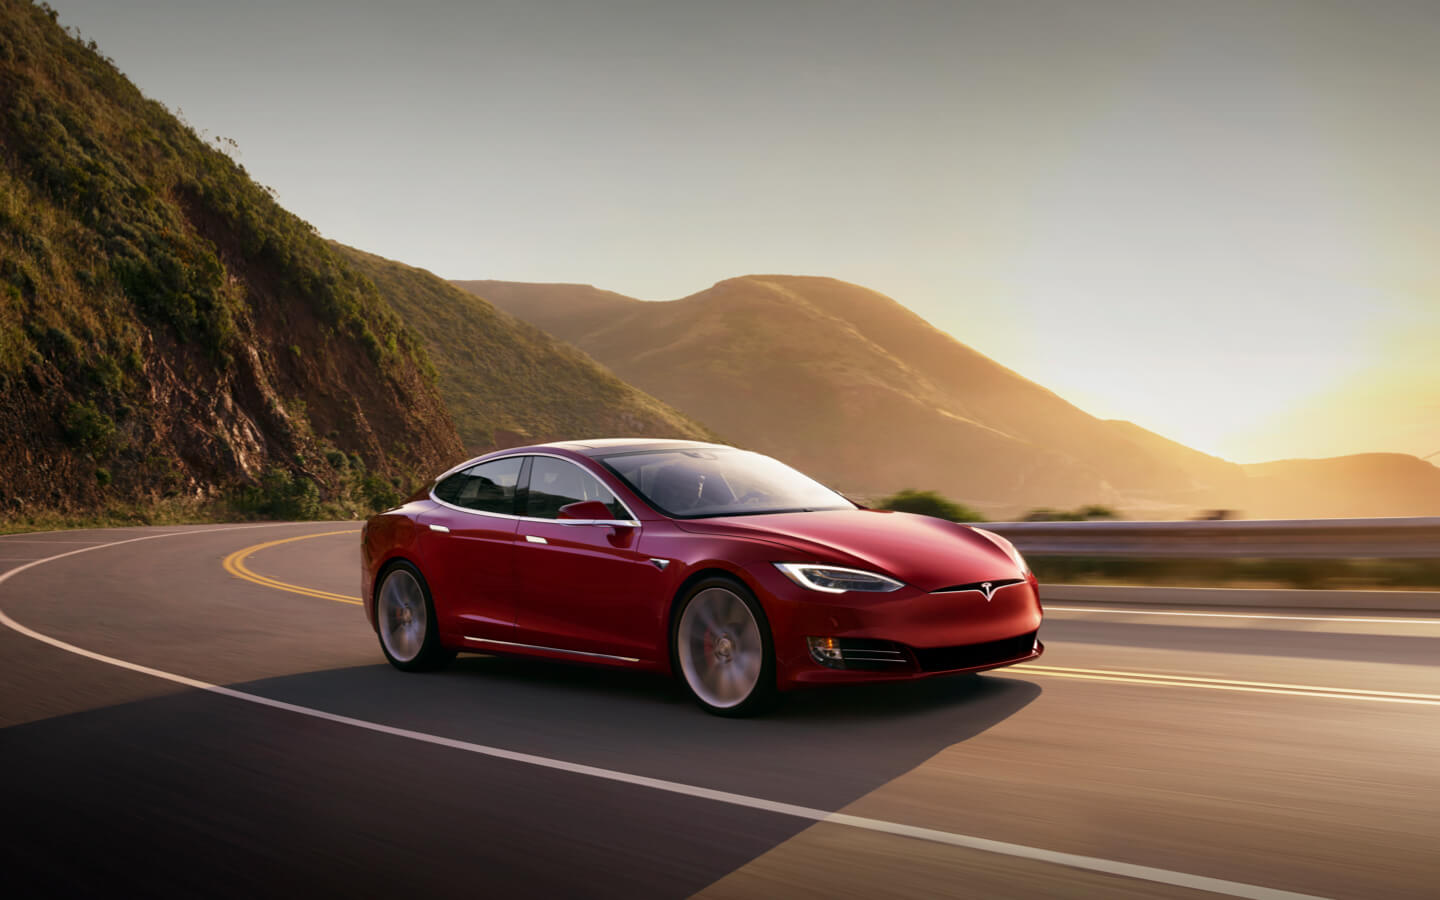 A red Model 3 Tesla electric car driving in the sunset